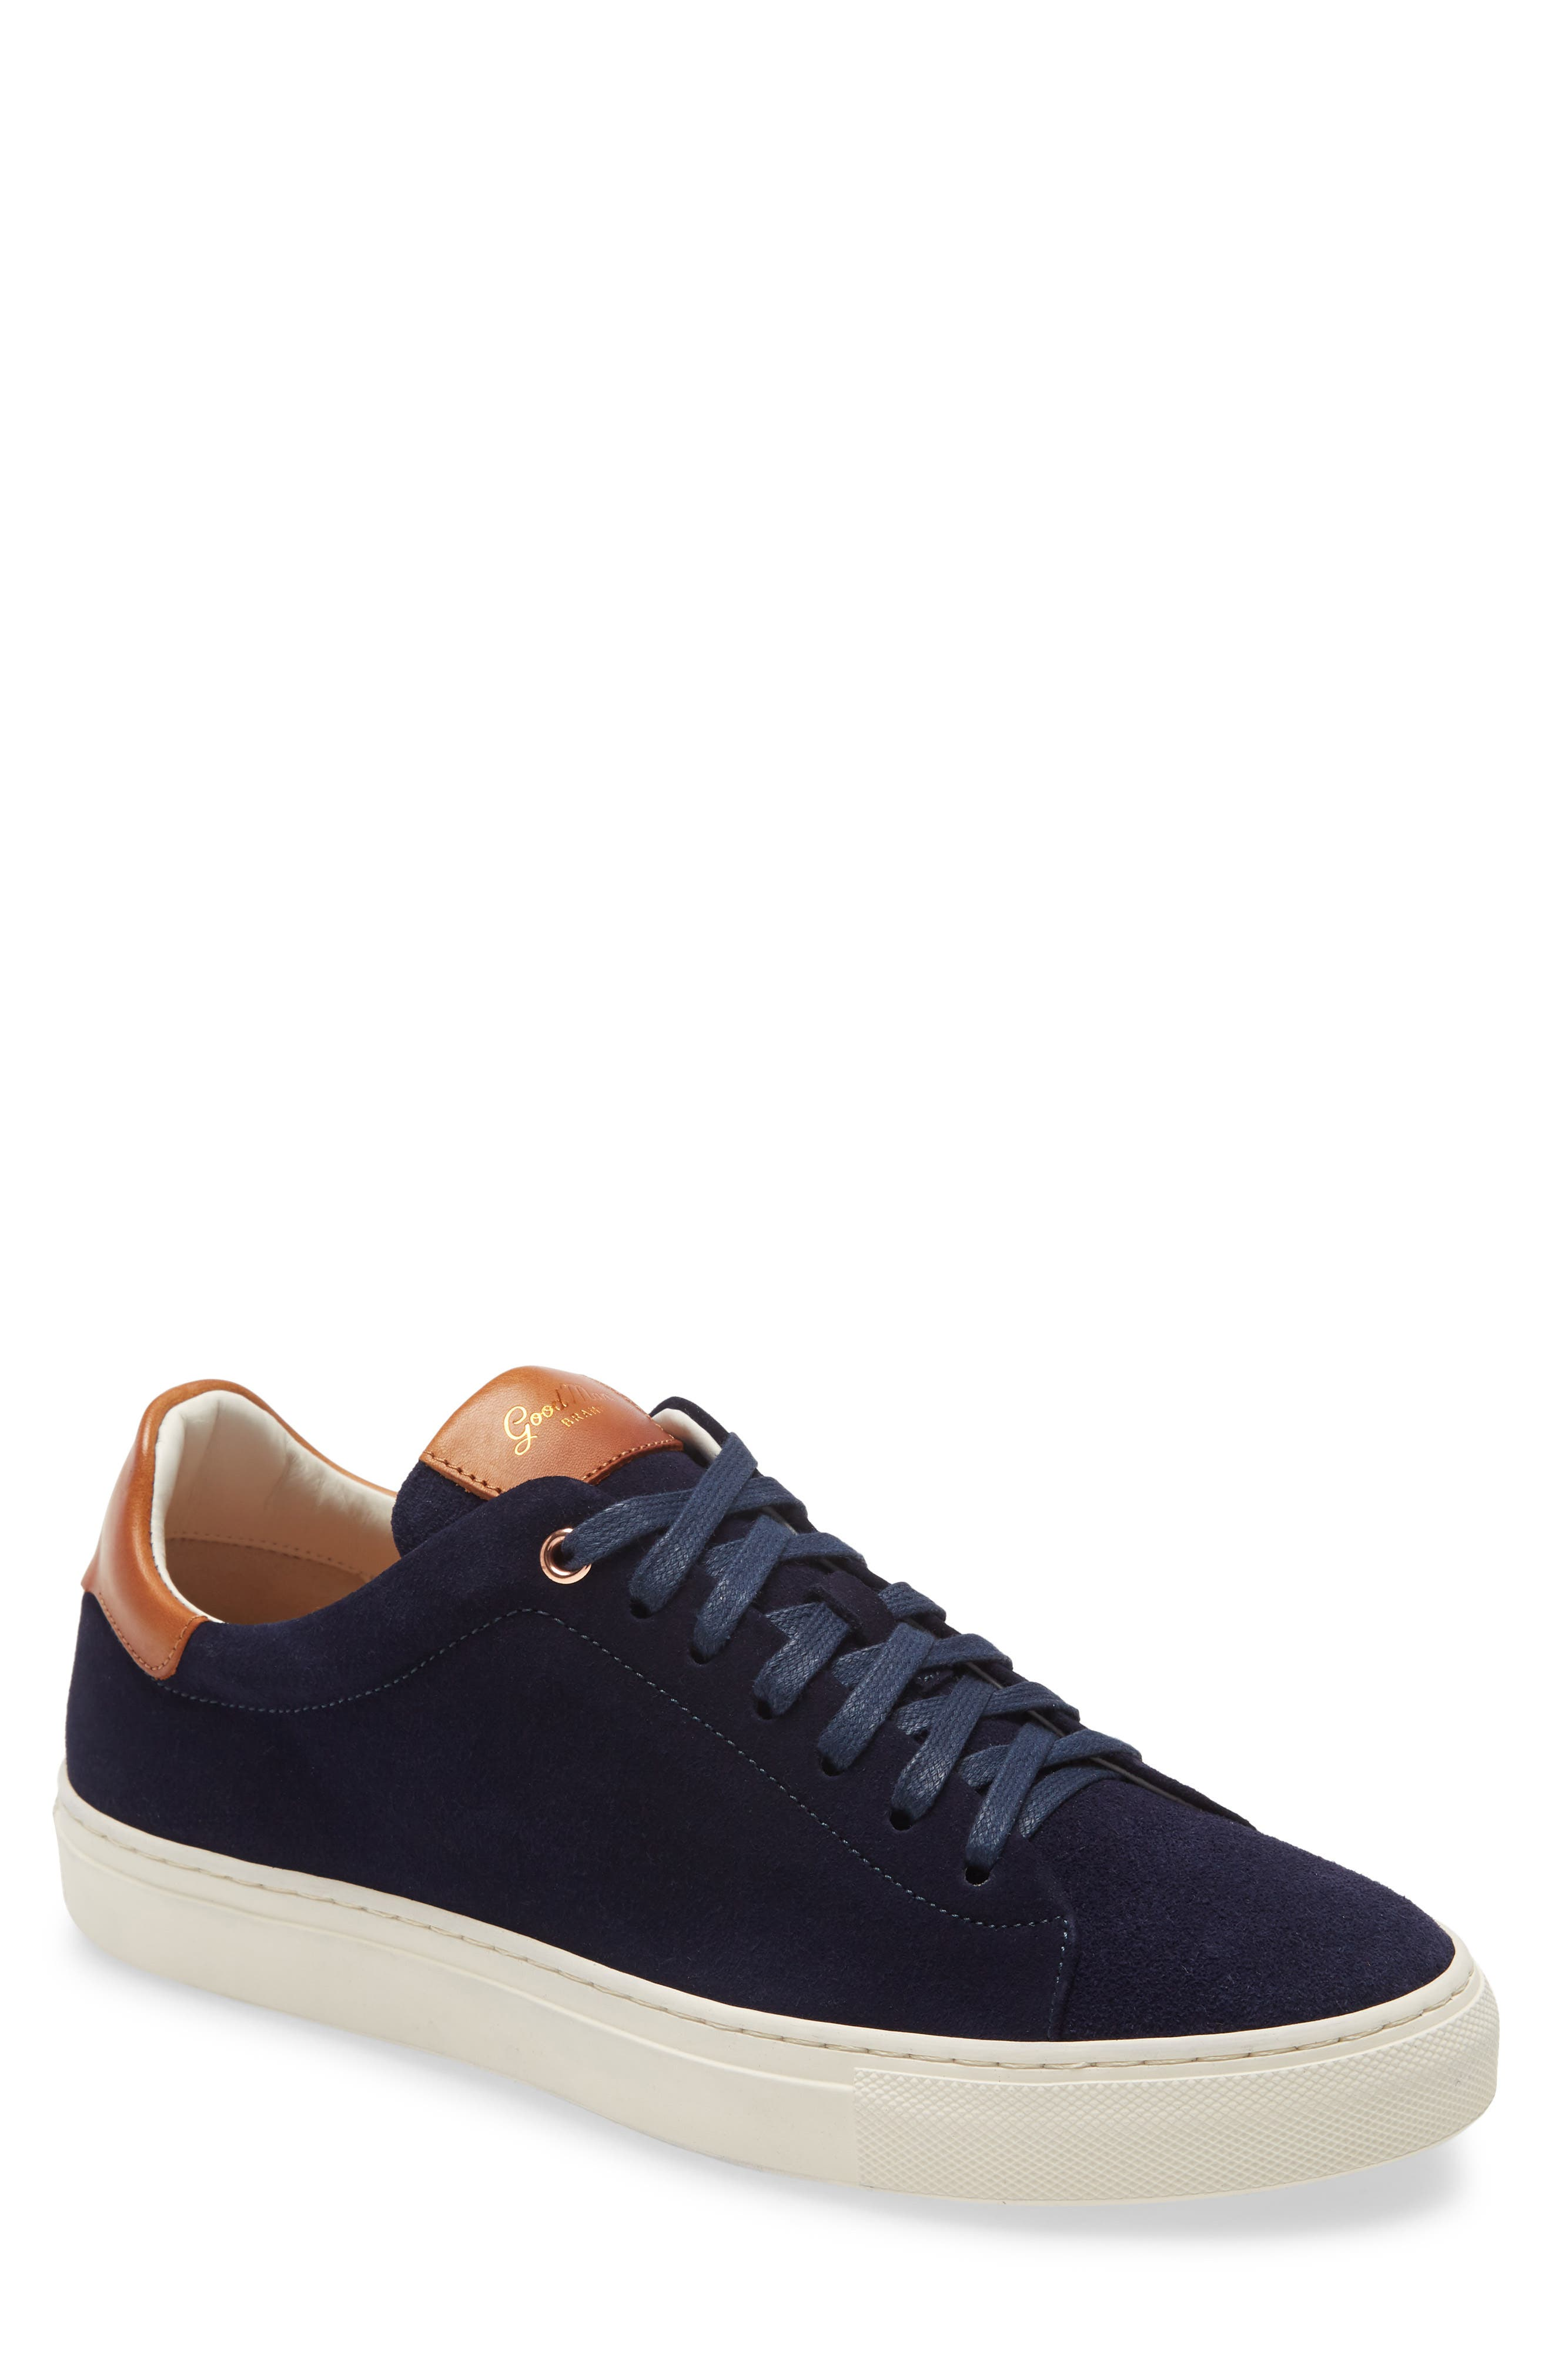 Rose-goldtone grommets punctuate the top of the laces on this Italian-crafted sneaker distinguished by luxe suede and its clean lines. Style Name: Good Man Brand Legend Low-Top Sneaker (Men). Style Number: 5922407. Available in stores.